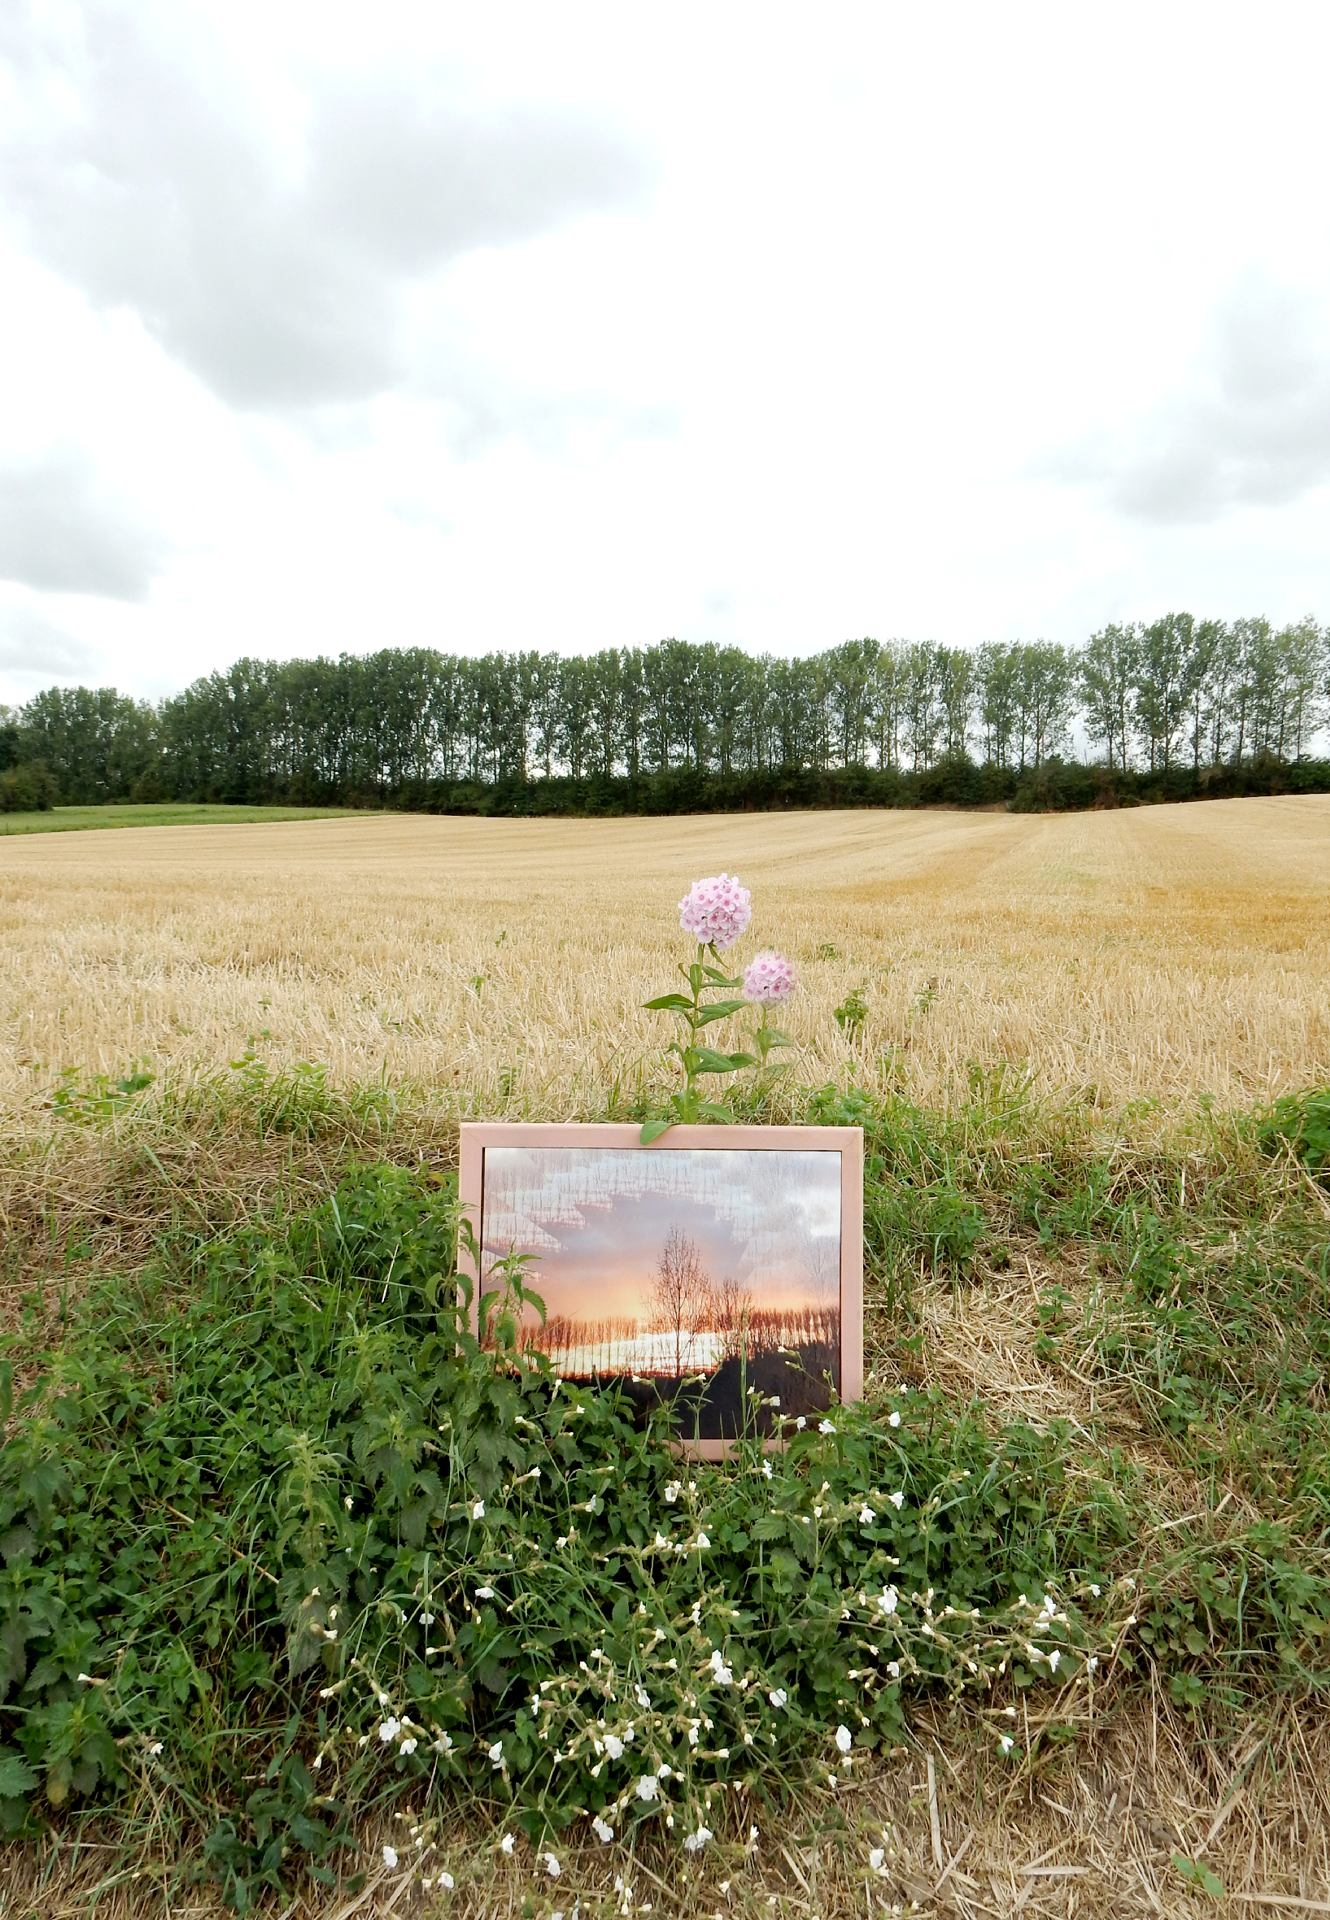 Land ART à la campagne